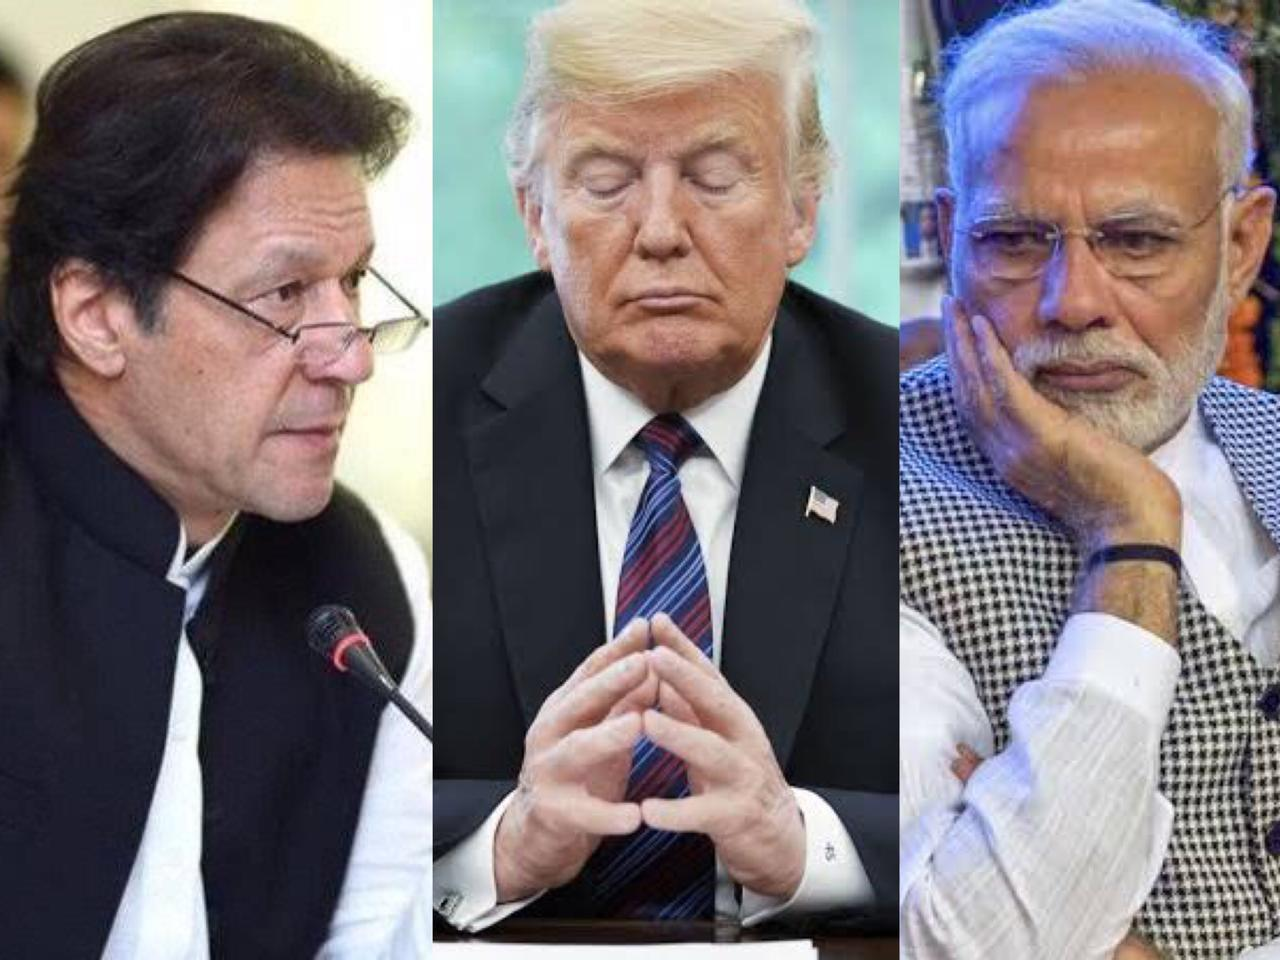 PM Imran Khan [L], US President Donald Trump [C] and Indian PM Narendra Modi [R].